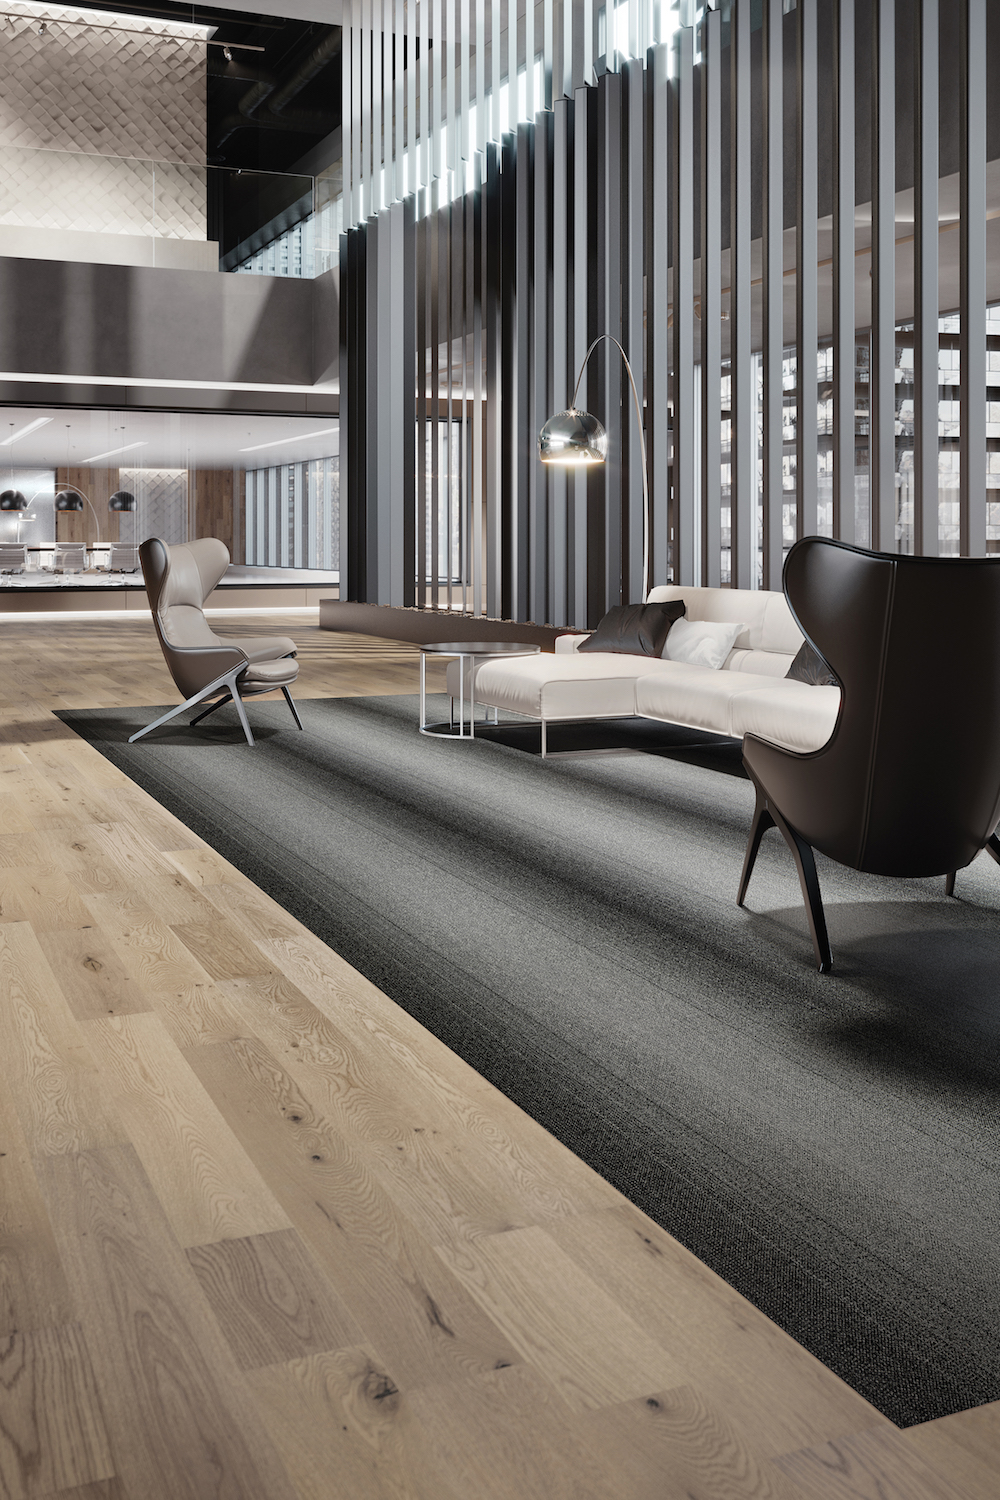 Meet Sunweave, Living Product Woven Sustainable Carpeting That Evokes The  Sunu0027s Natural Patterning   3BL Media